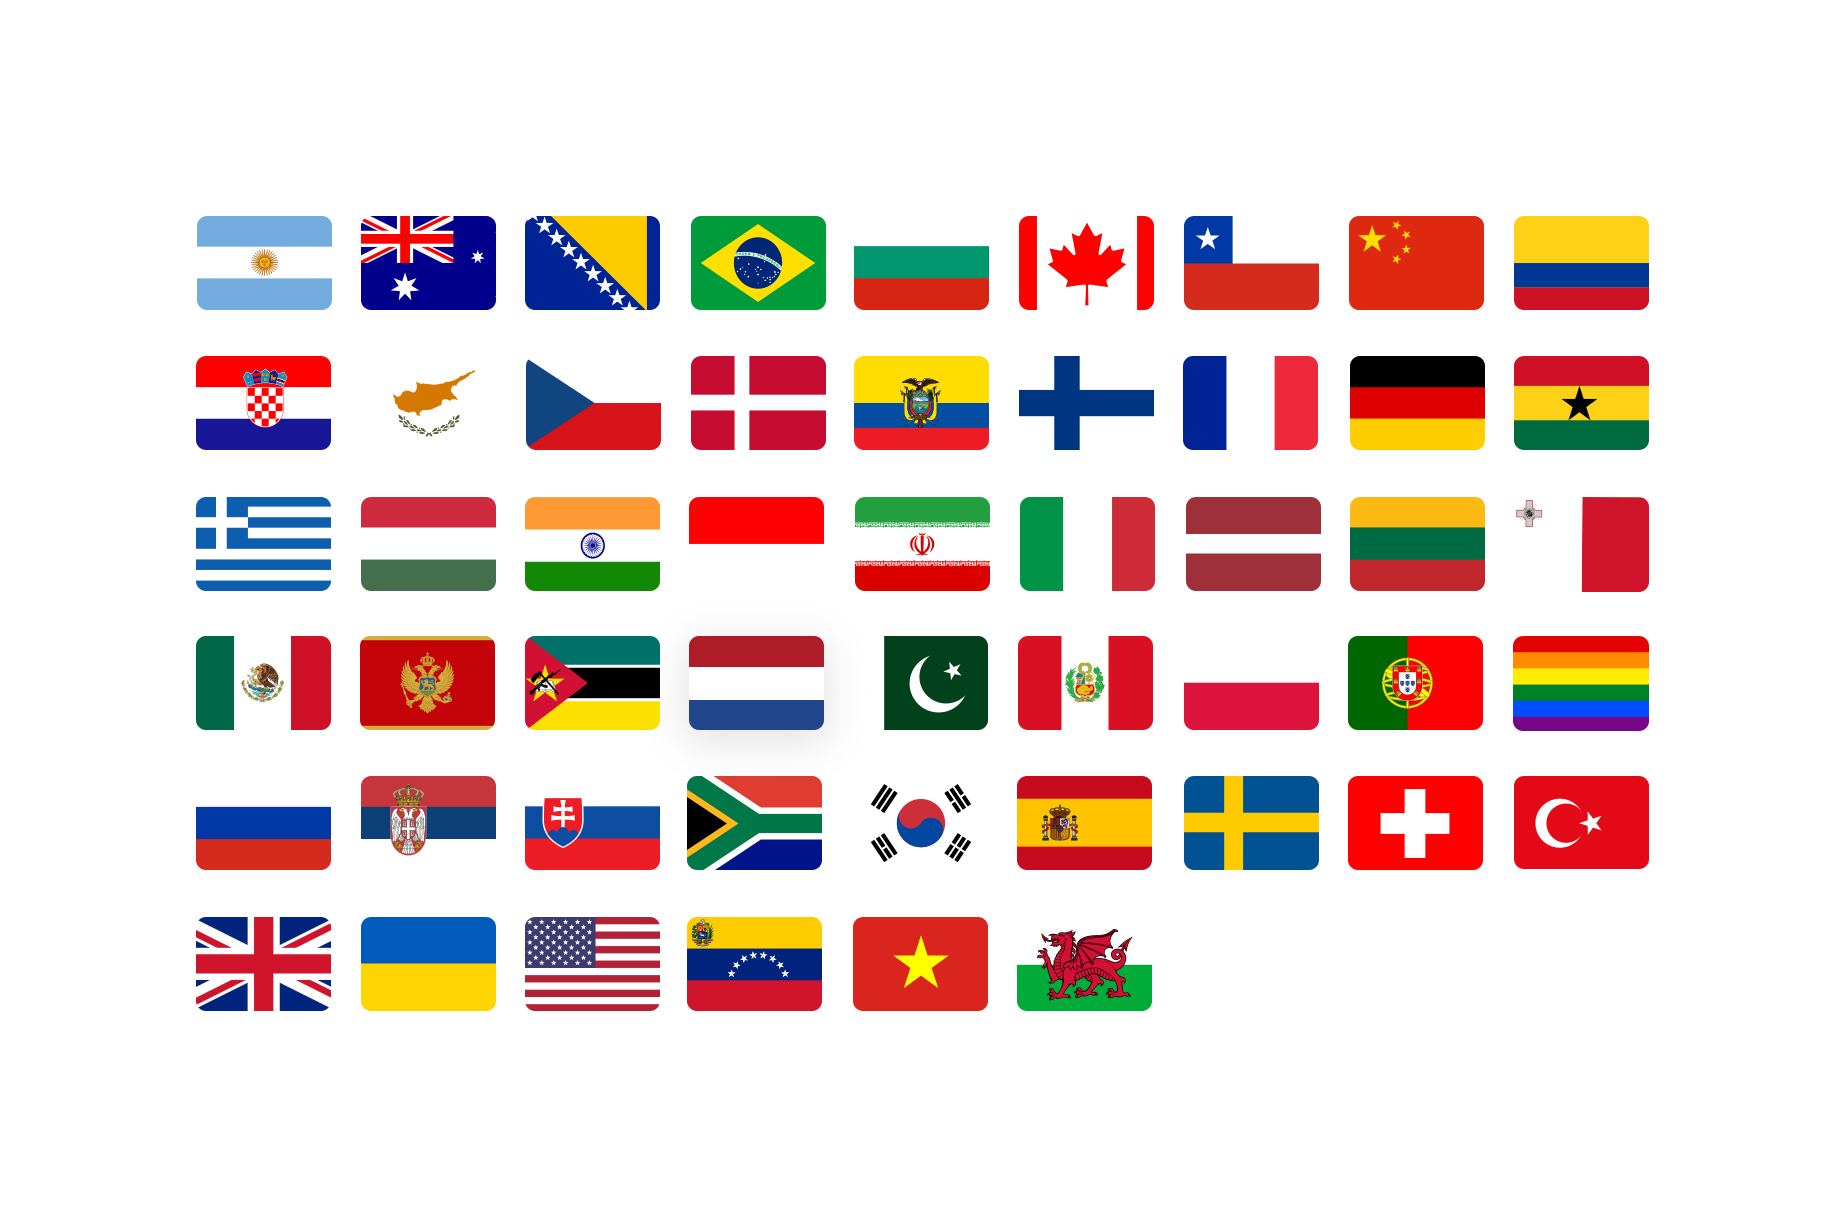 rectangle-careers-nationalities-country-flags-10-2020